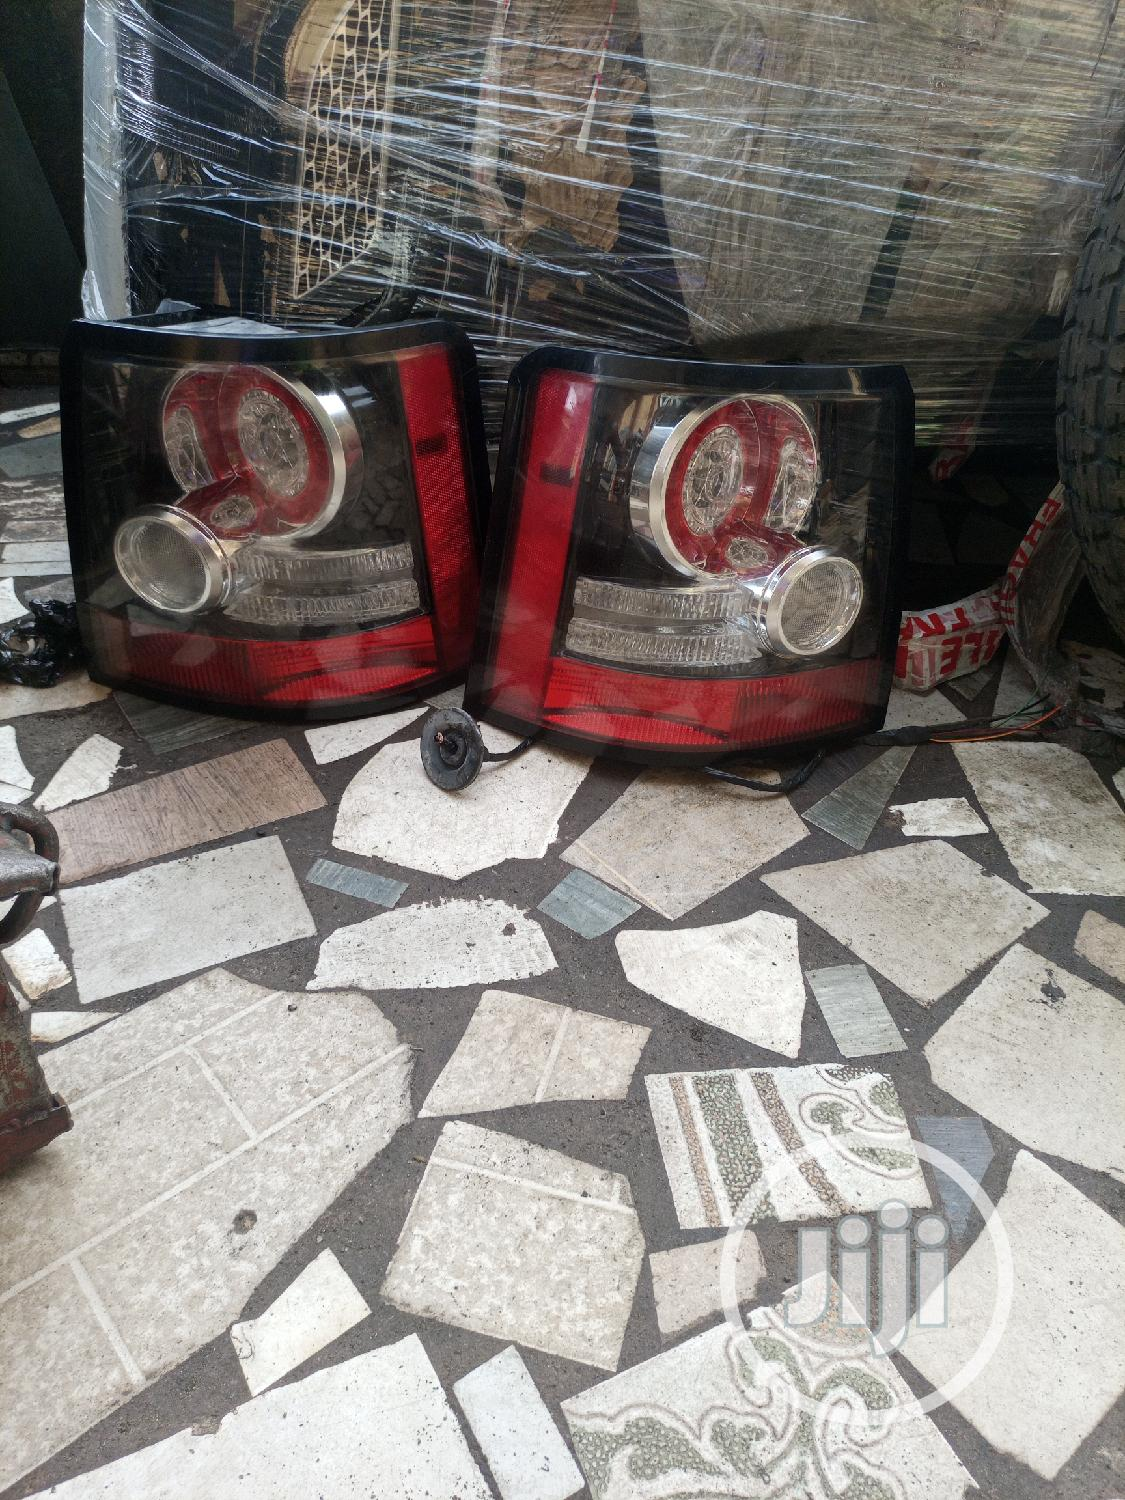 Range Rover Sports Rear Light 2010 To 2012 Model | Vehicle Parts & Accessories for sale in Mushin, Lagos State, Nigeria